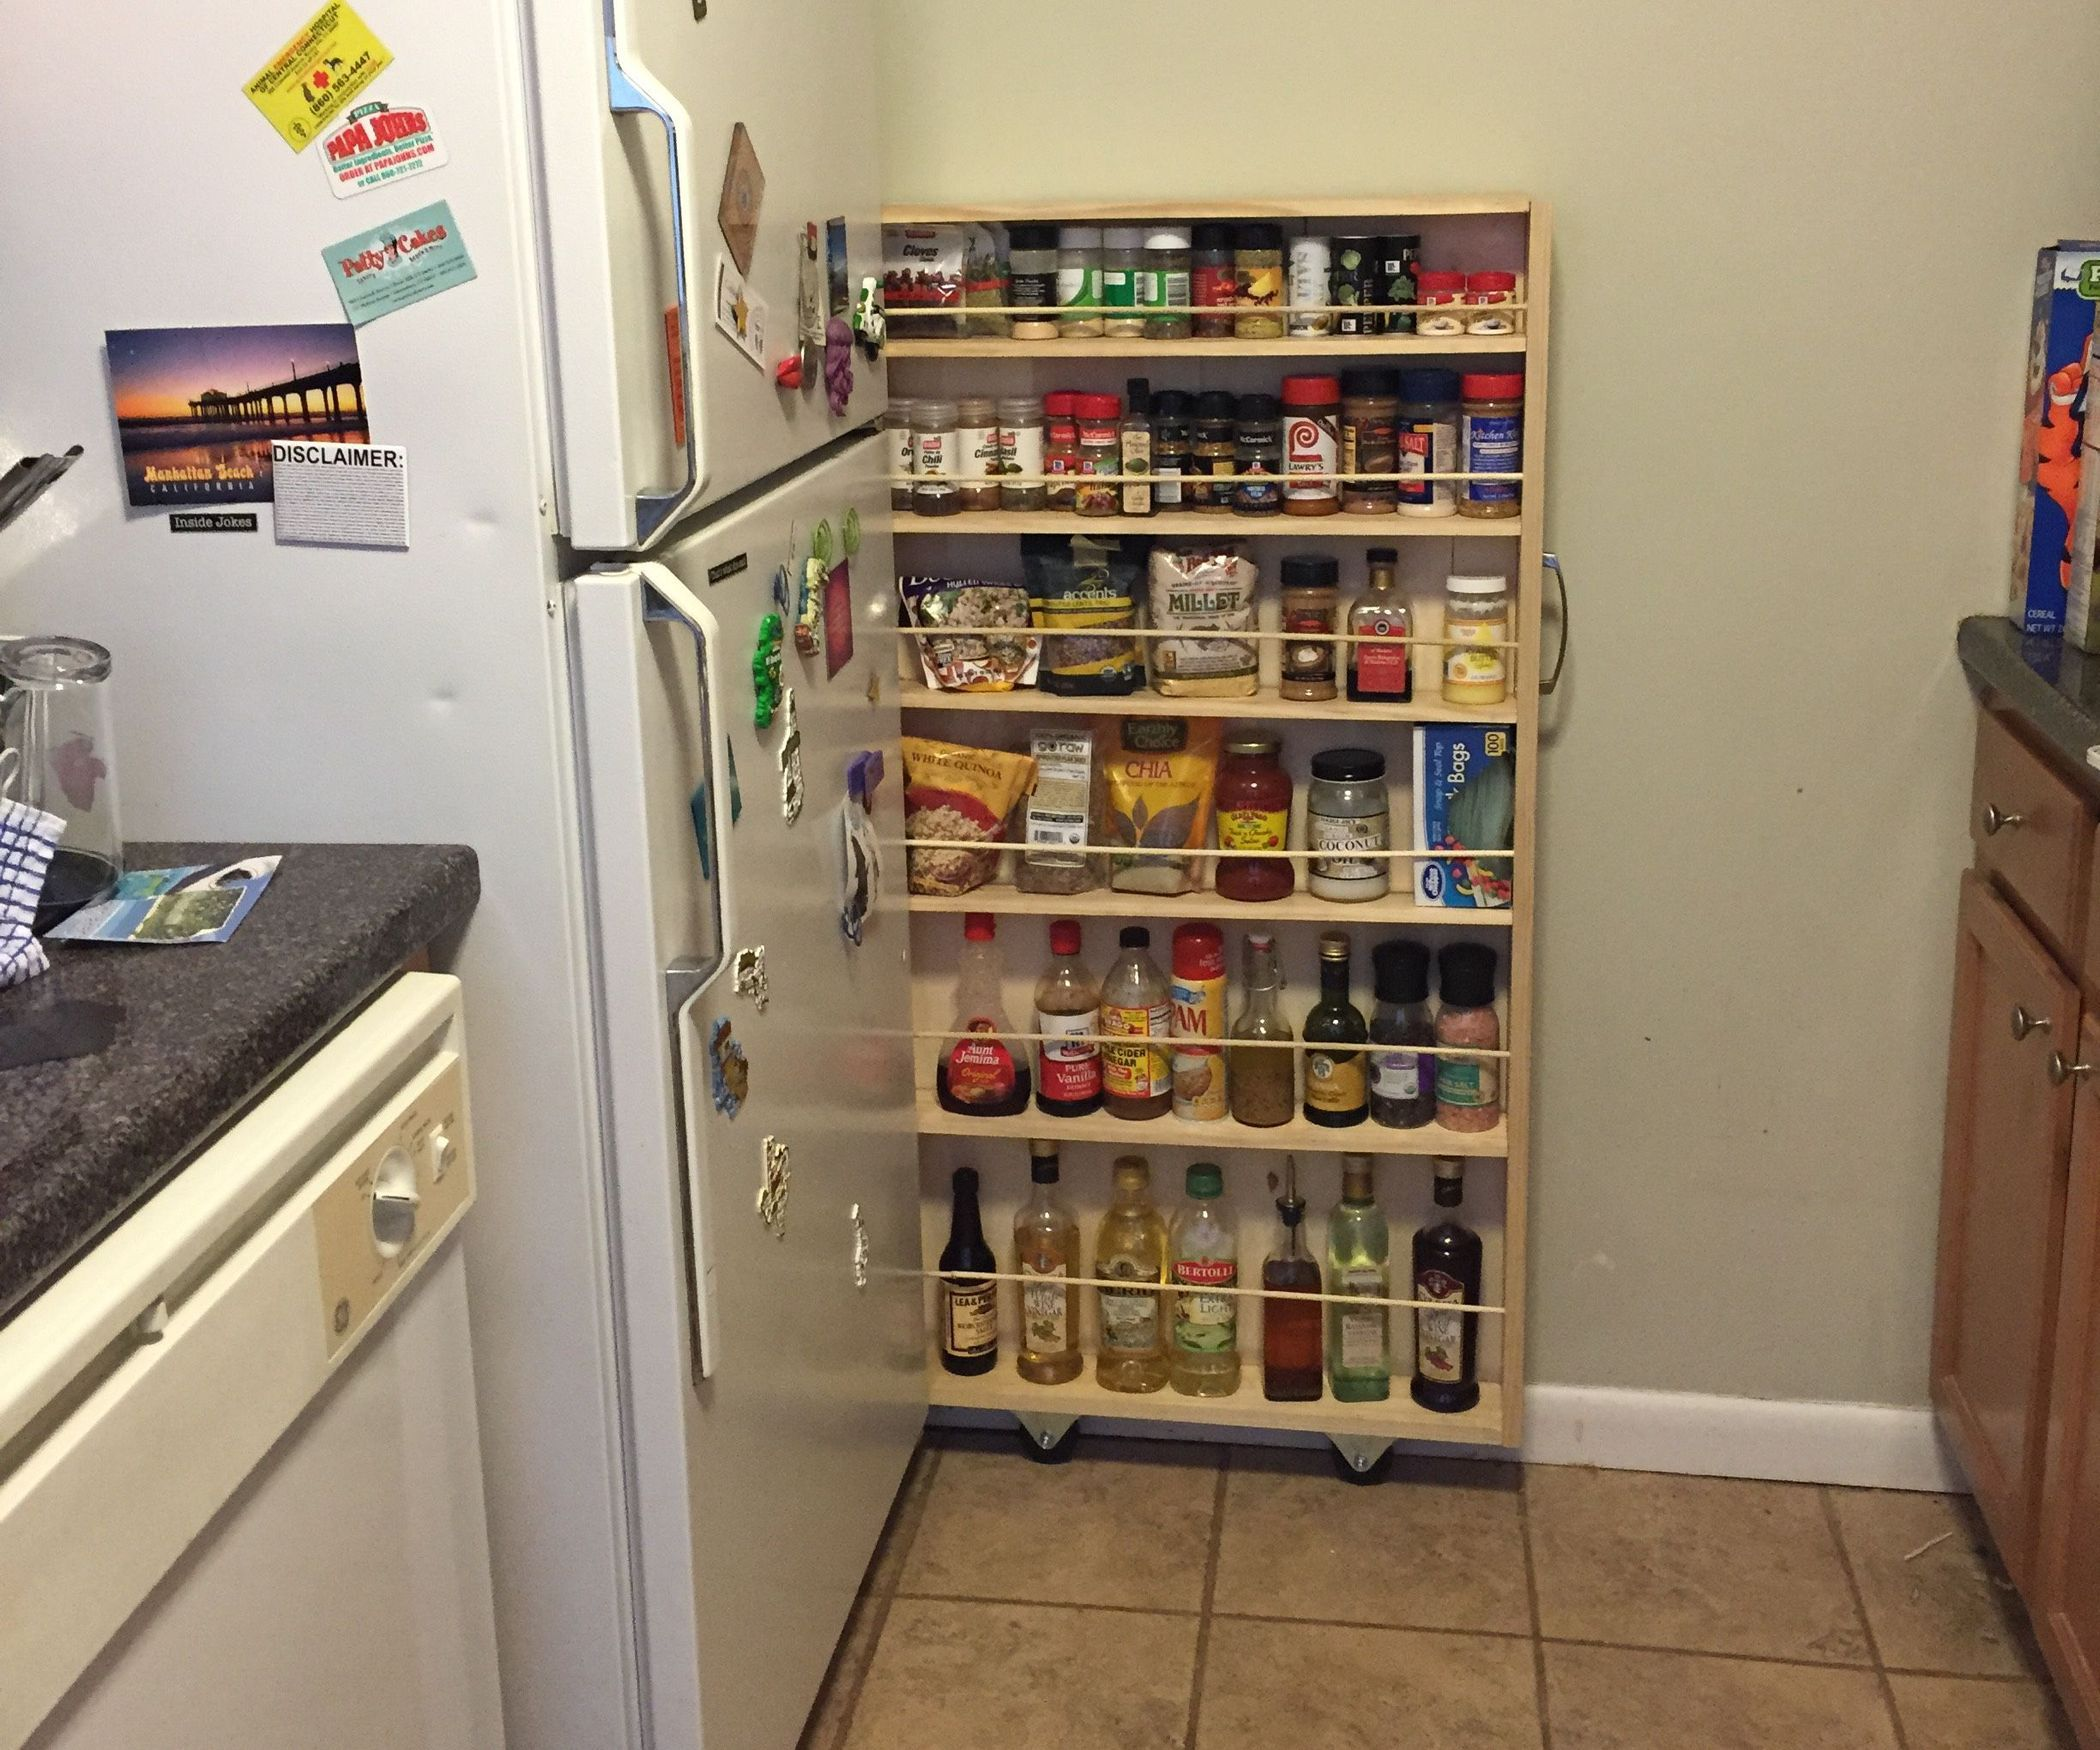 Hidden Fridge Gap Slide-Out Pantry | Small apartments, Pantry and ...